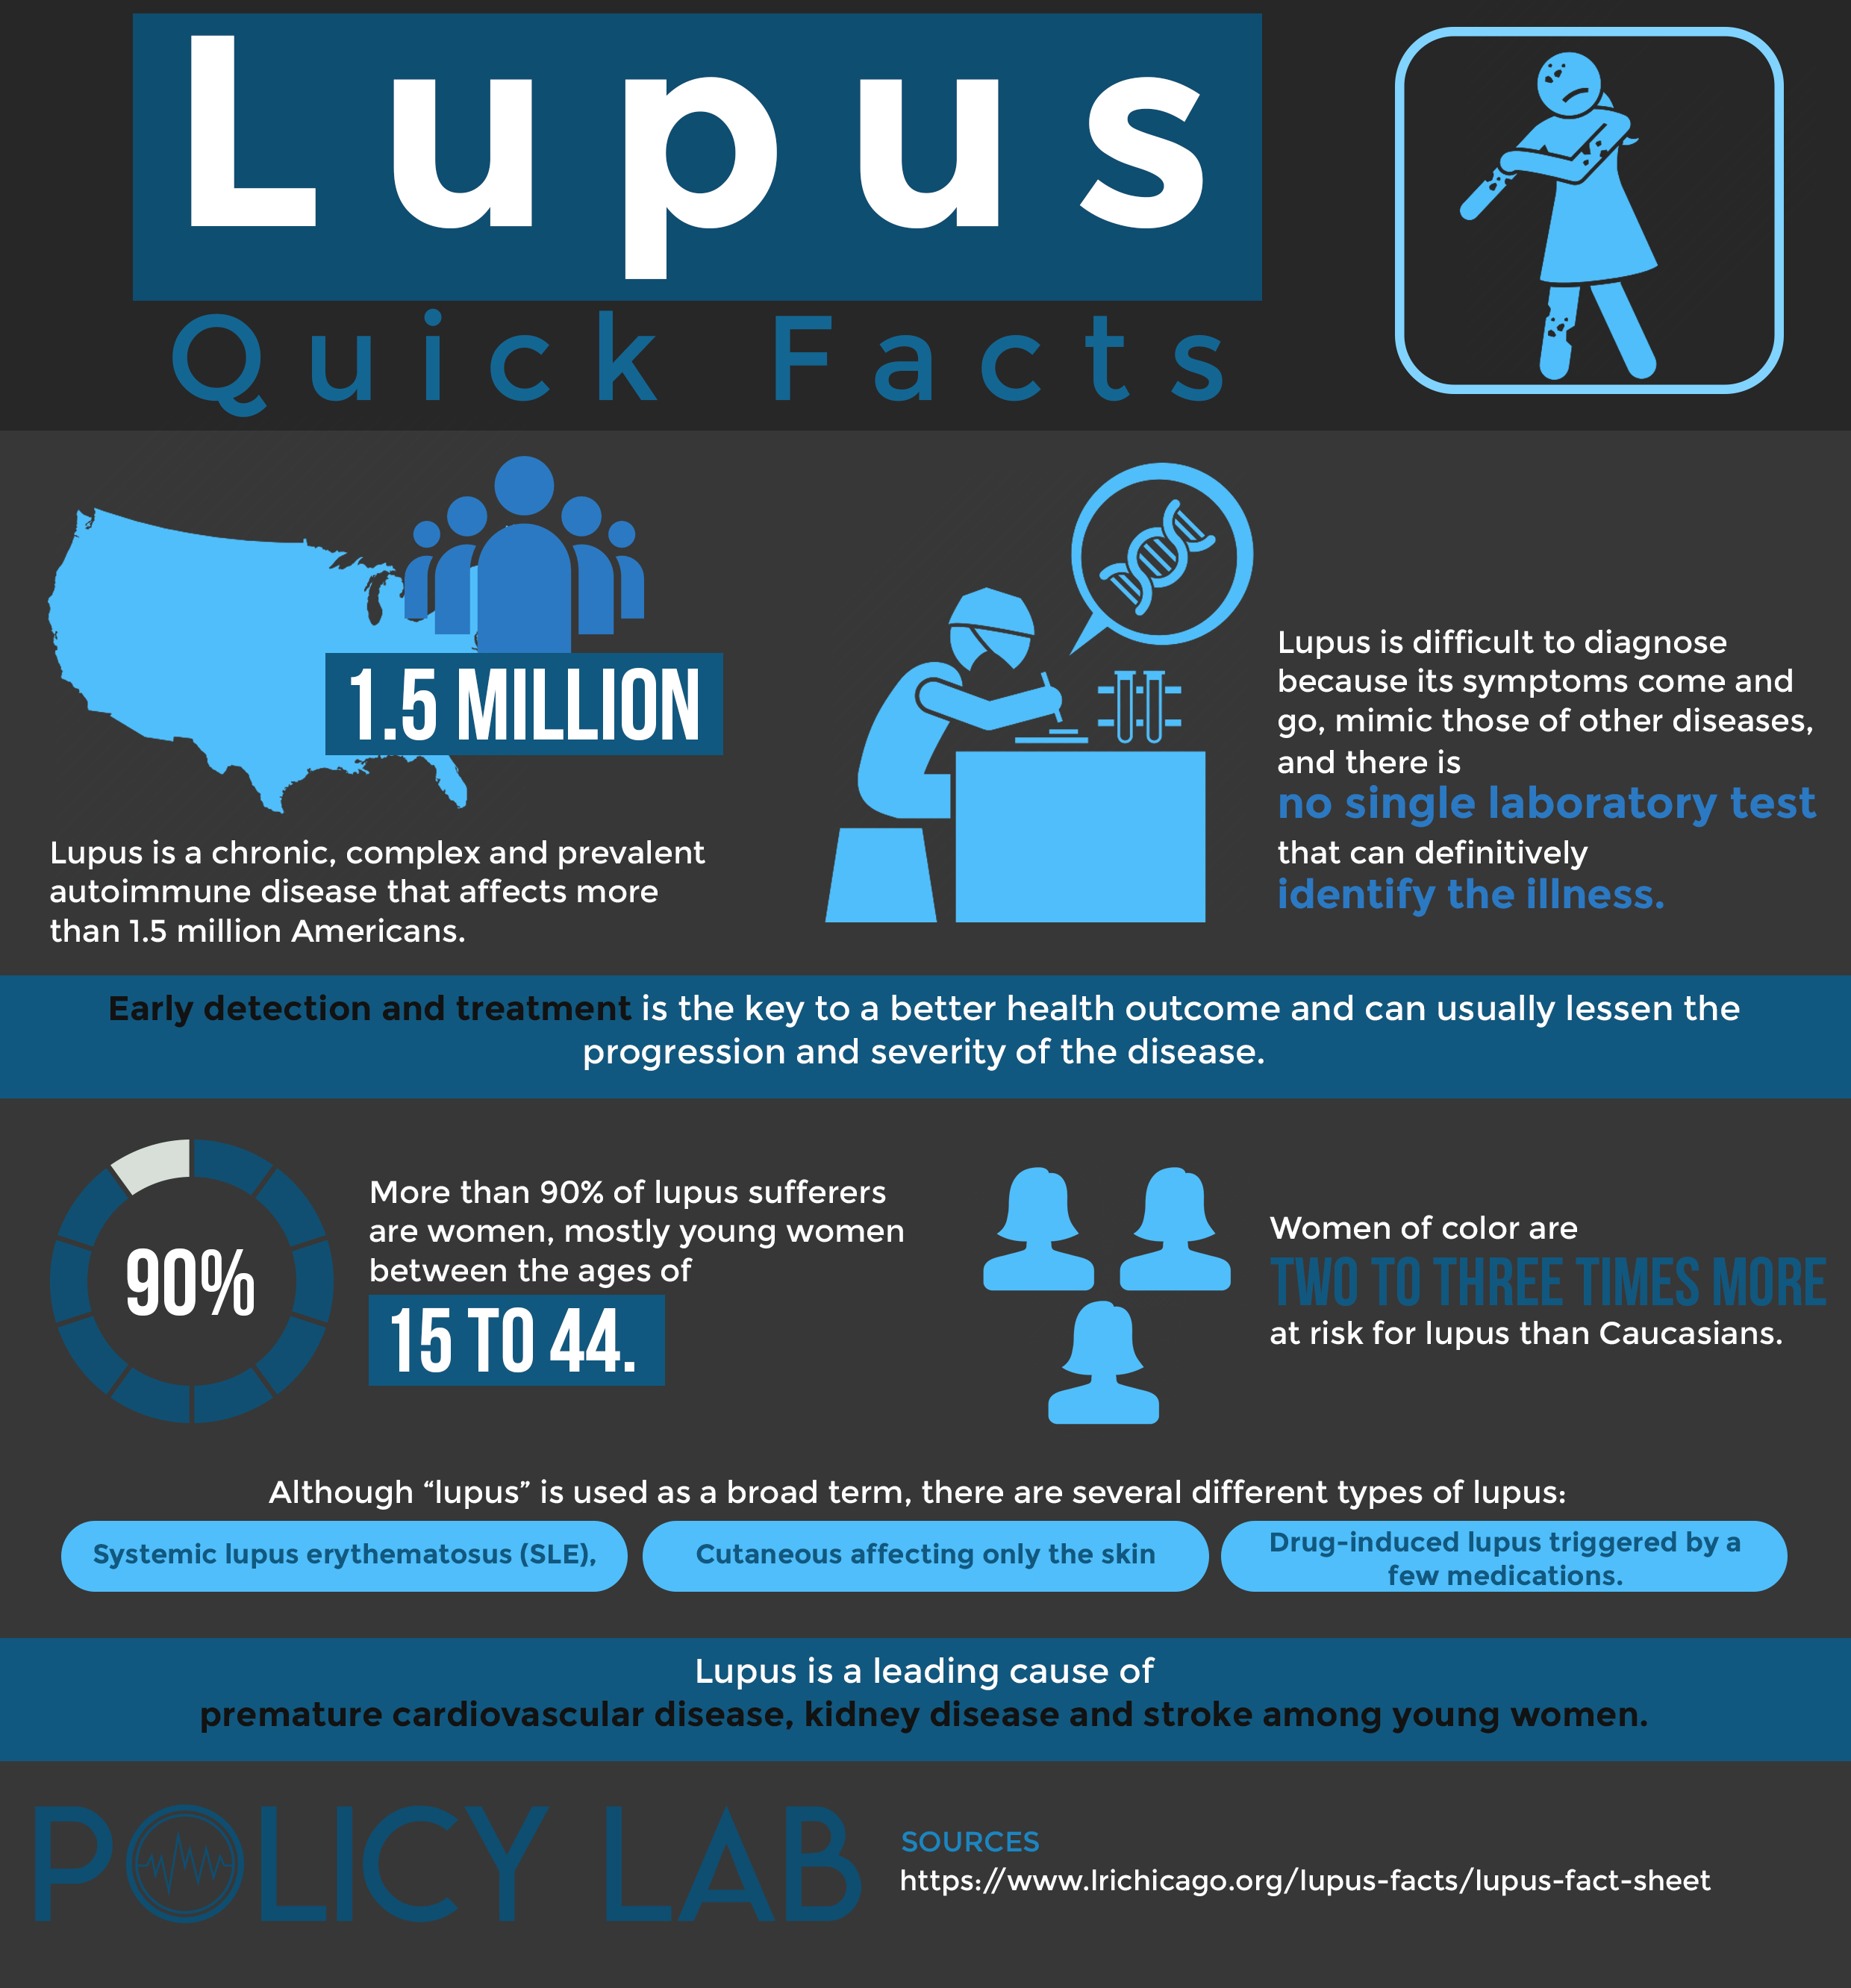 Lupus Infographic Image and Quick Facts